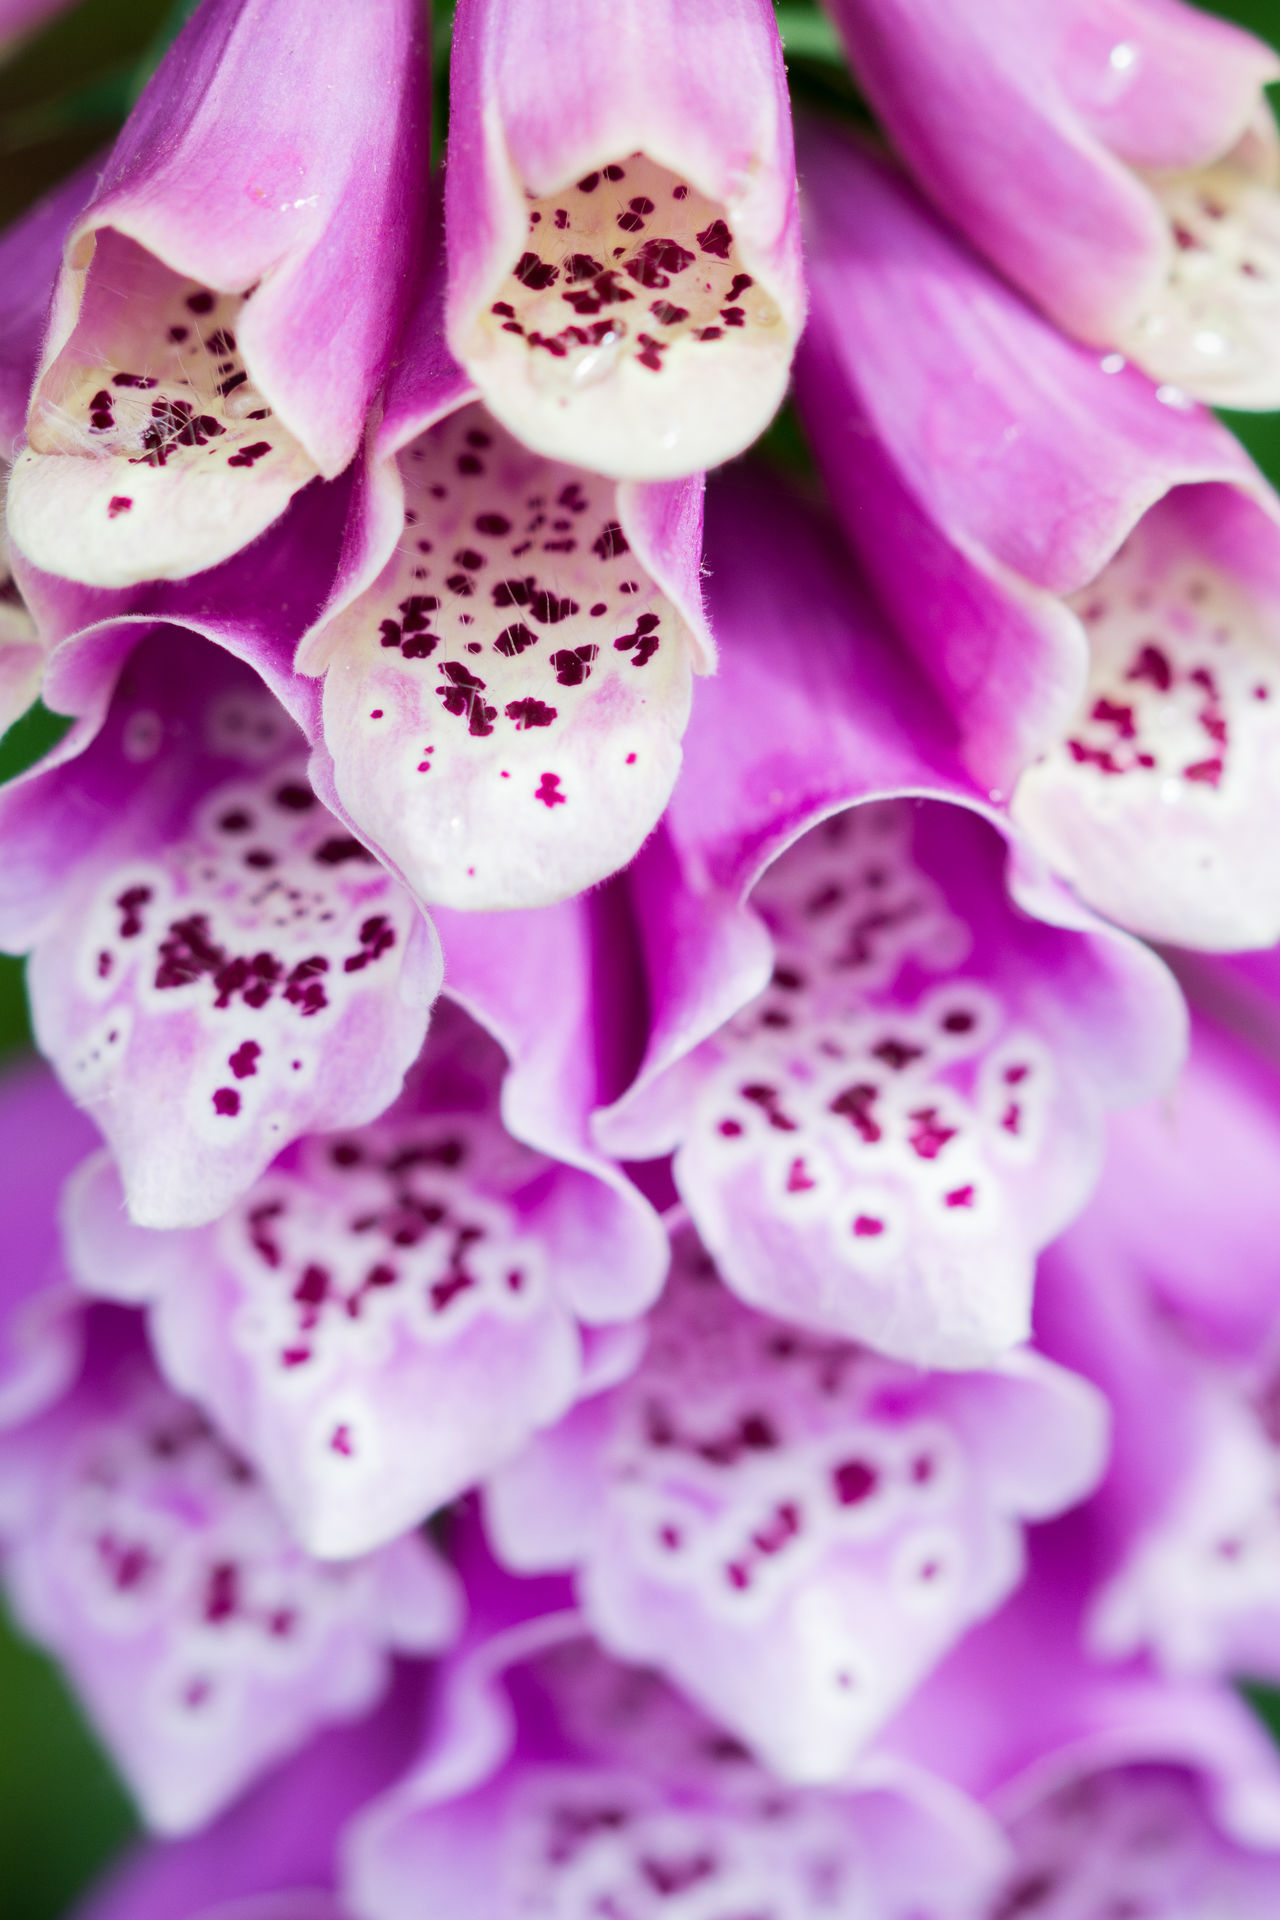 Backgrounds Beauty In Nature Close-up Day Flower Flower Head Foxglove Foxgloves Fragility Freshness Full Frame Nature No People Outdoors Pink Color Plant Purple